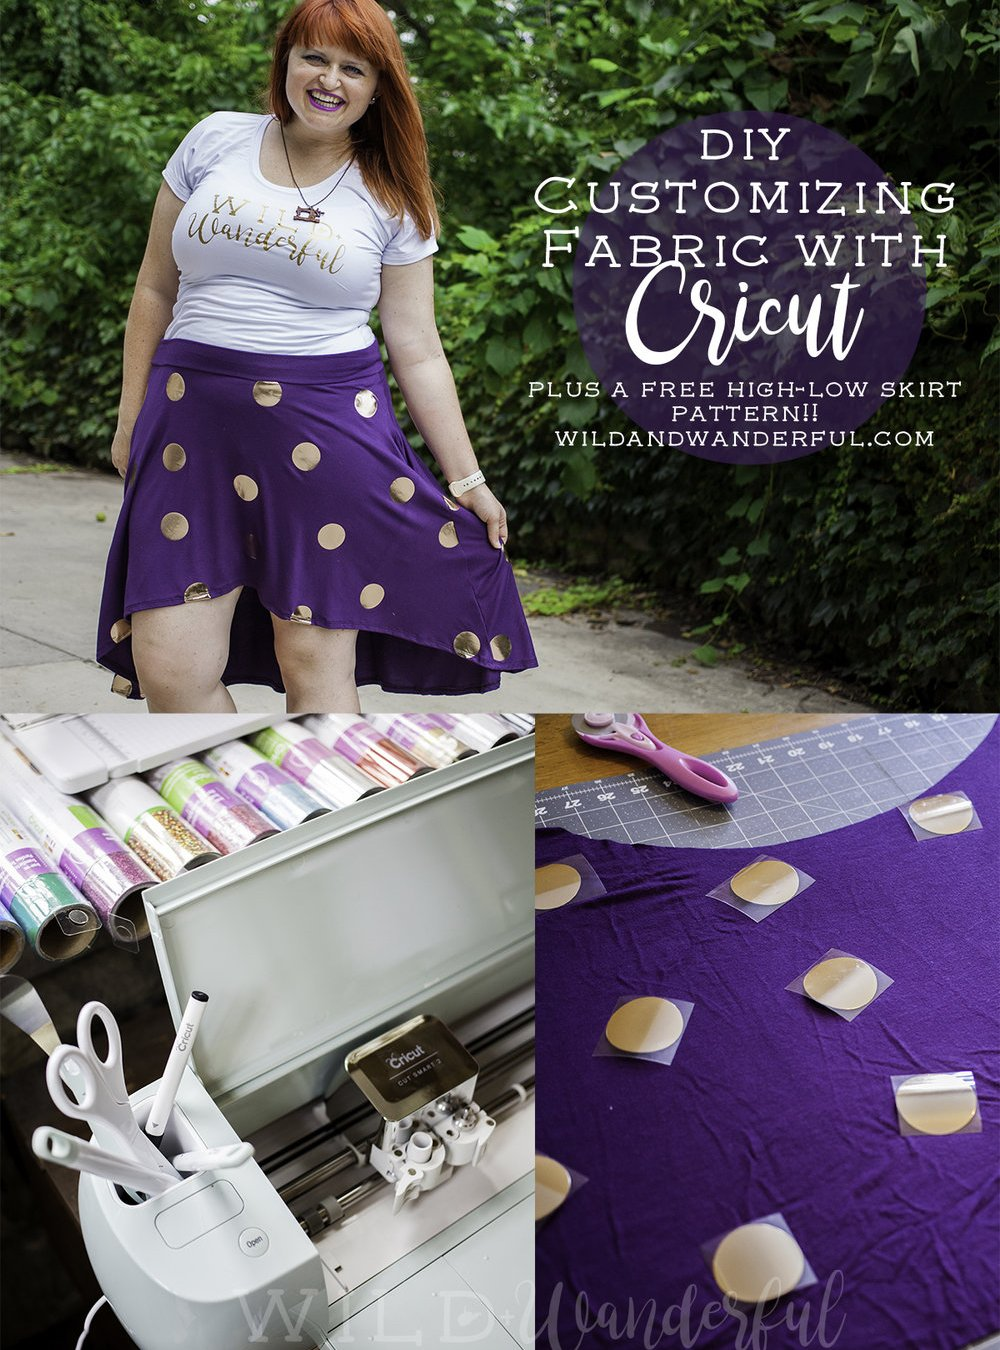 Customizing Fabric with Cricut (and a FREE skirt pattern!)